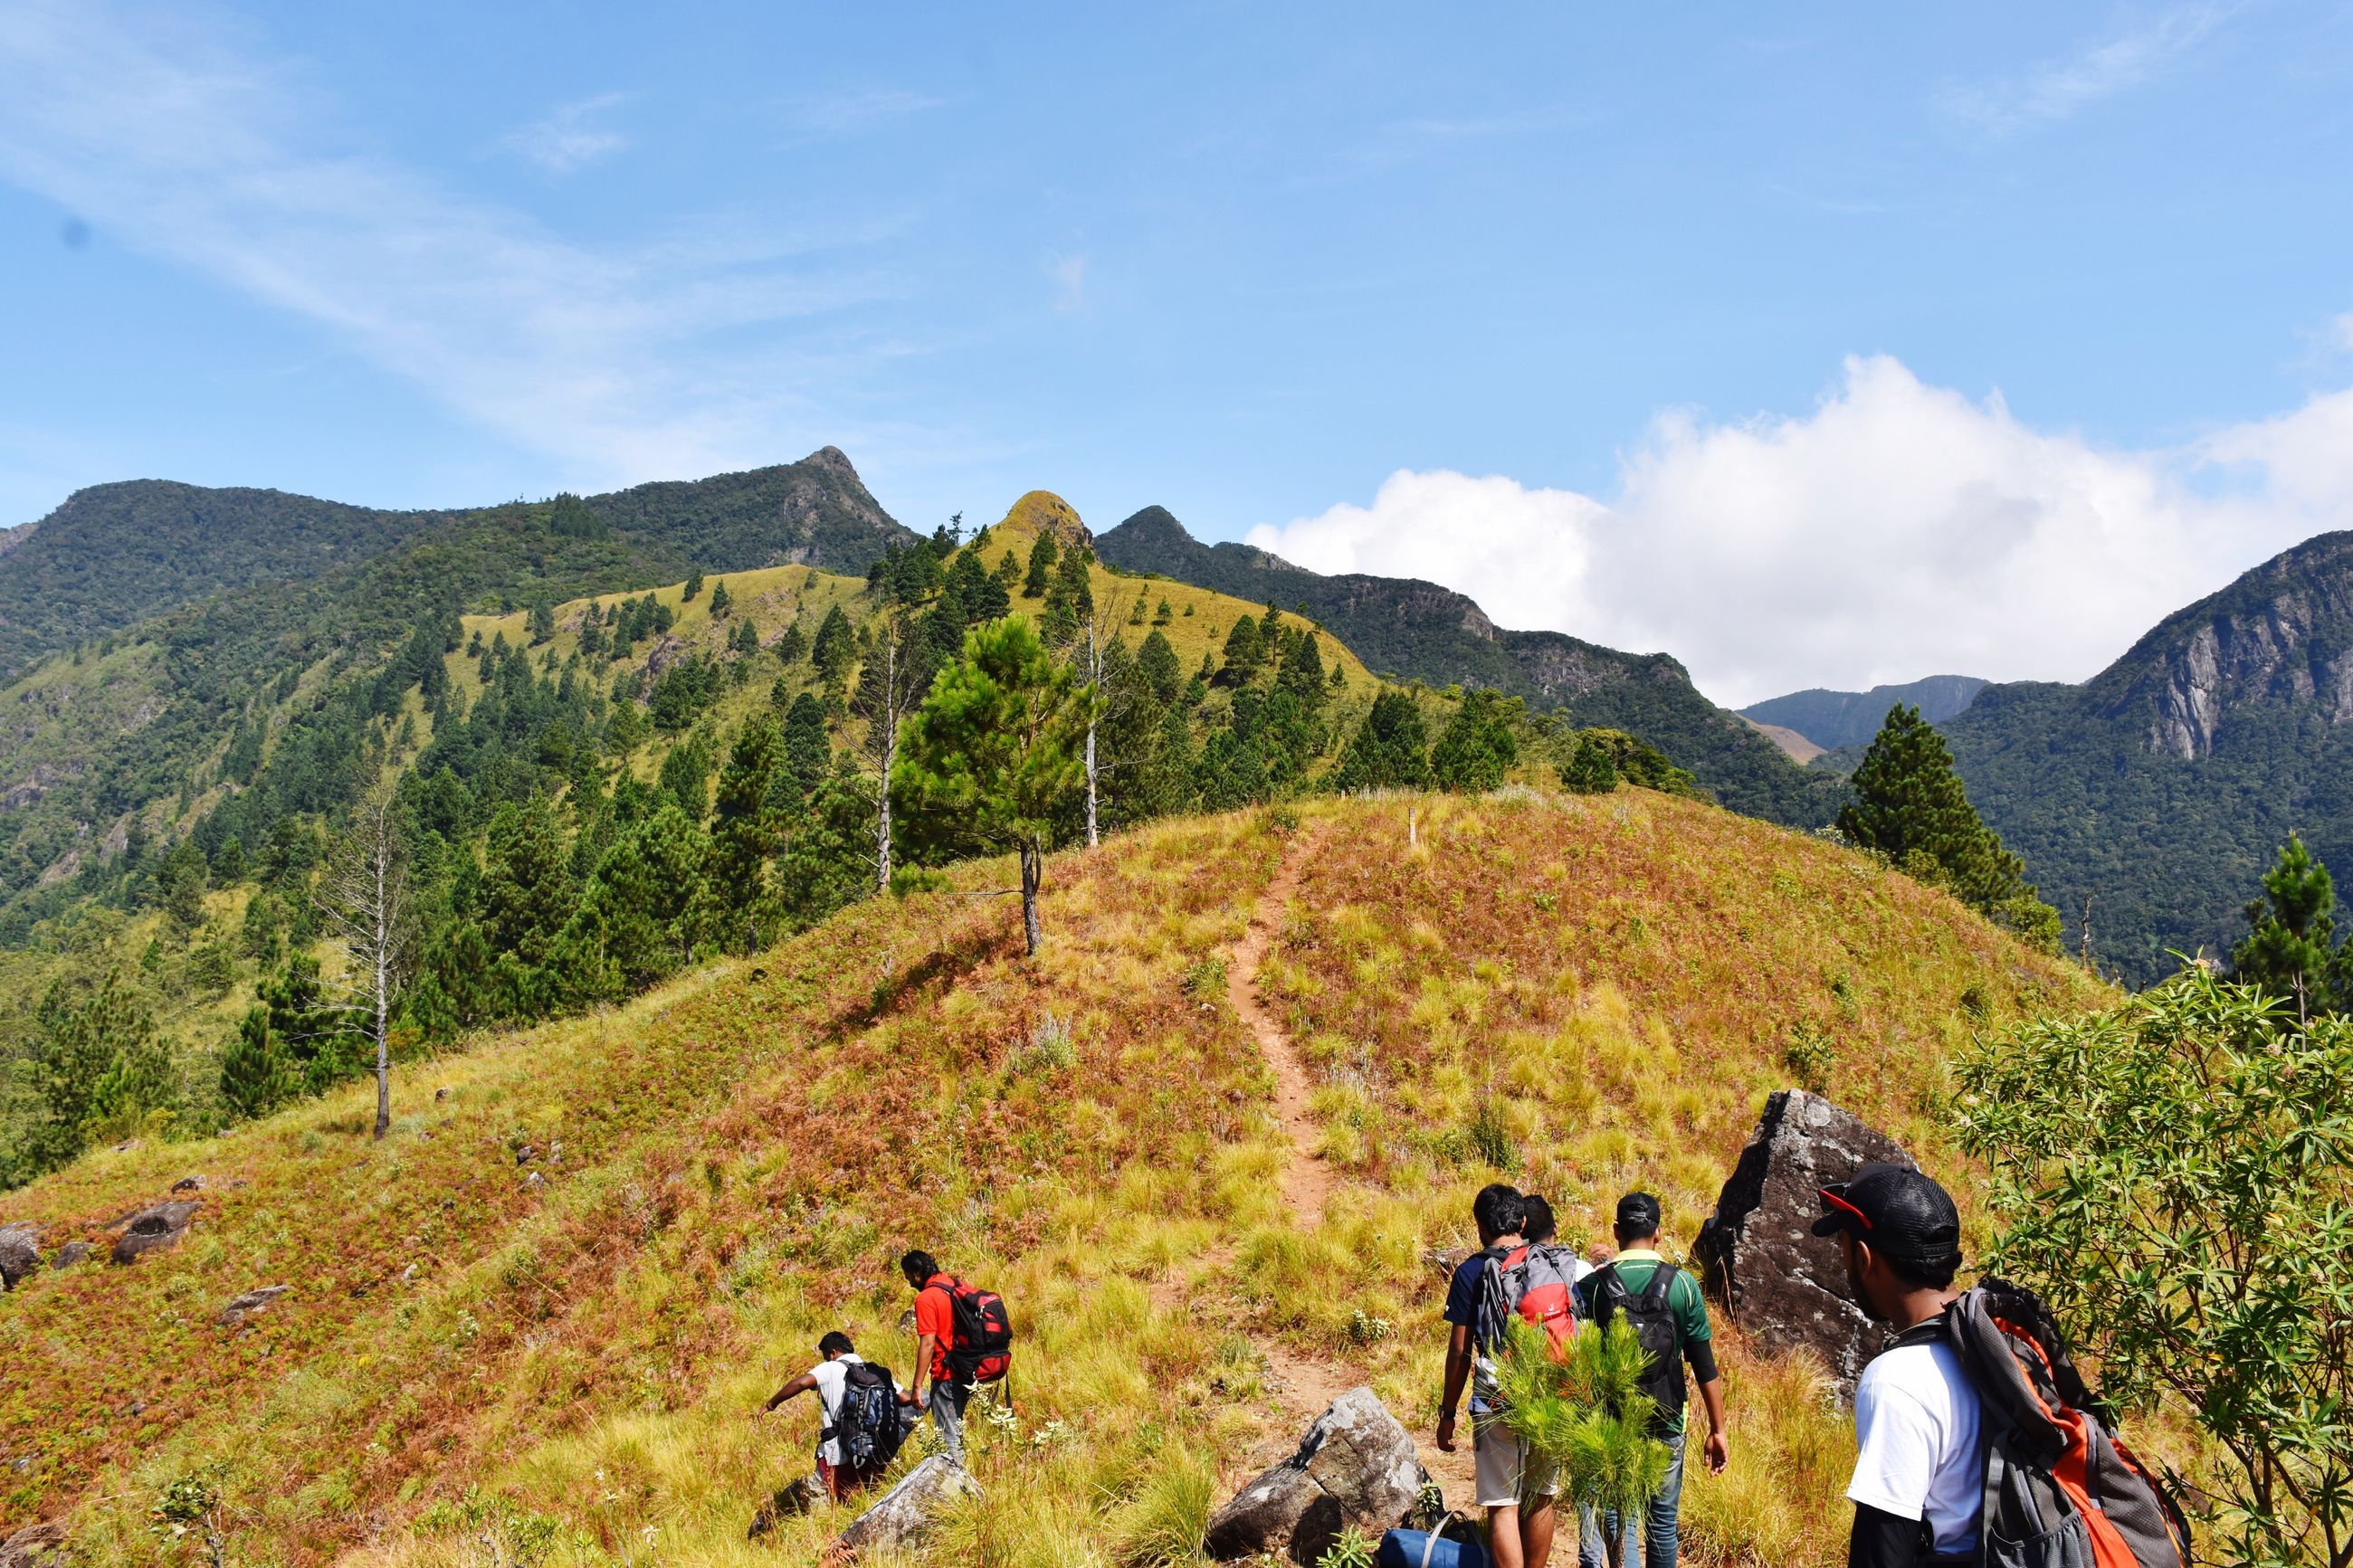 mountain, real people, adventure, nature, hiking, leisure activity, backpack, scenics, beauty in nature, sky, men, mountain range, rear view, hiker, exploration, day, medium group of people, tranquil scene, lifestyles, tranquility, women, landscape, outdoors, tree, healthy lifestyle, road, togetherness, grass, friendship, mammal, people